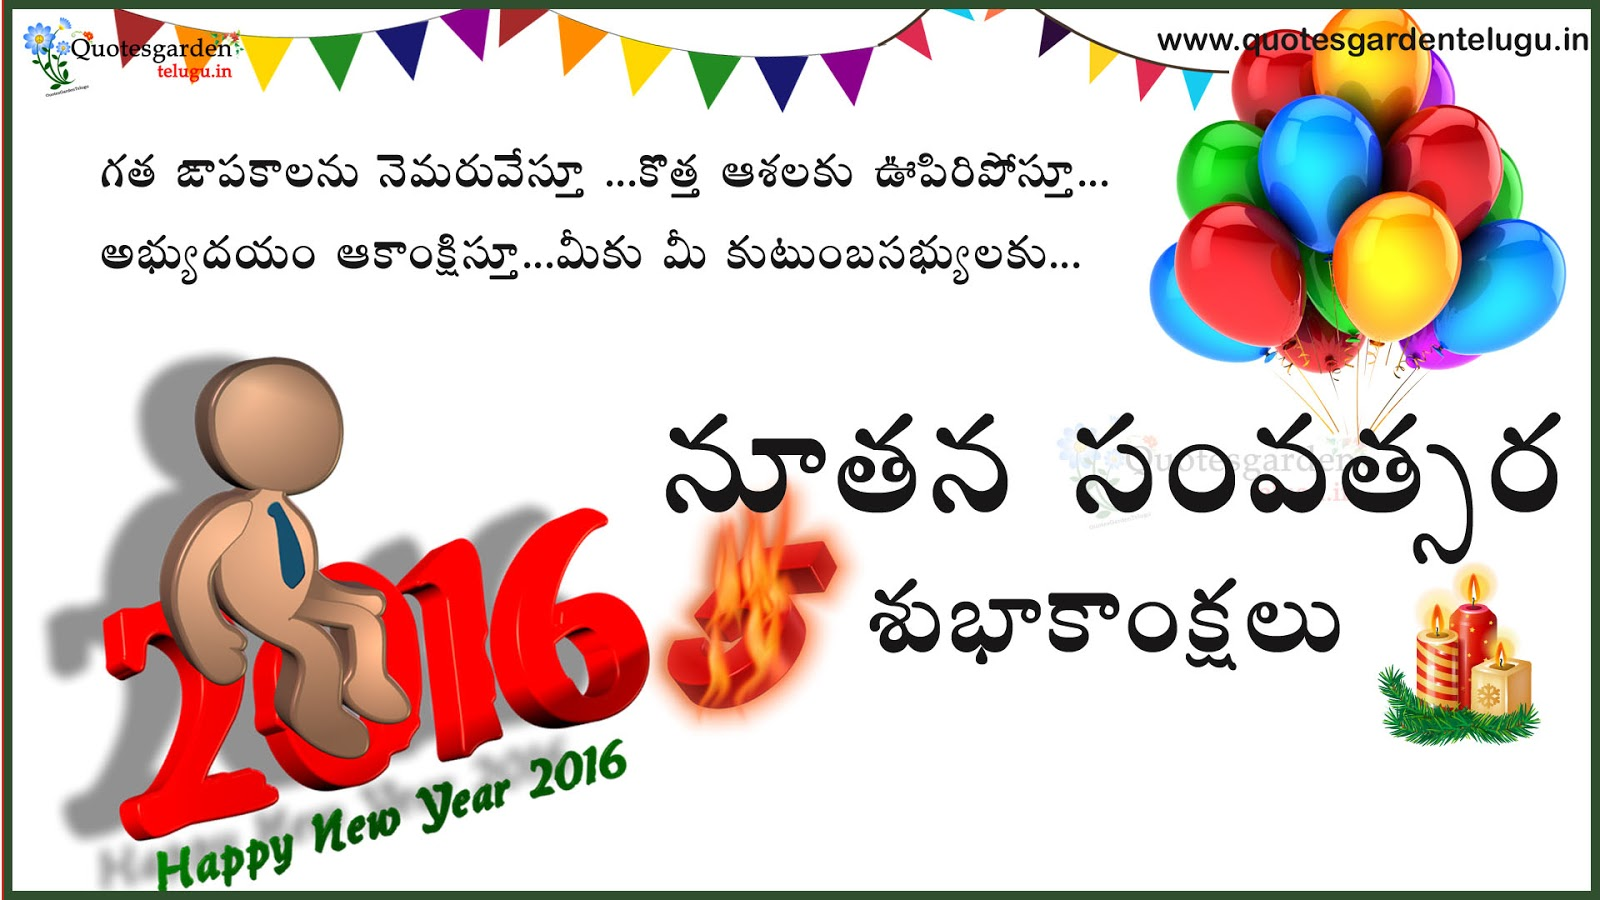 Wish you Happy New year 2016 Greetings in telugu | QUOTES GARDEN ...